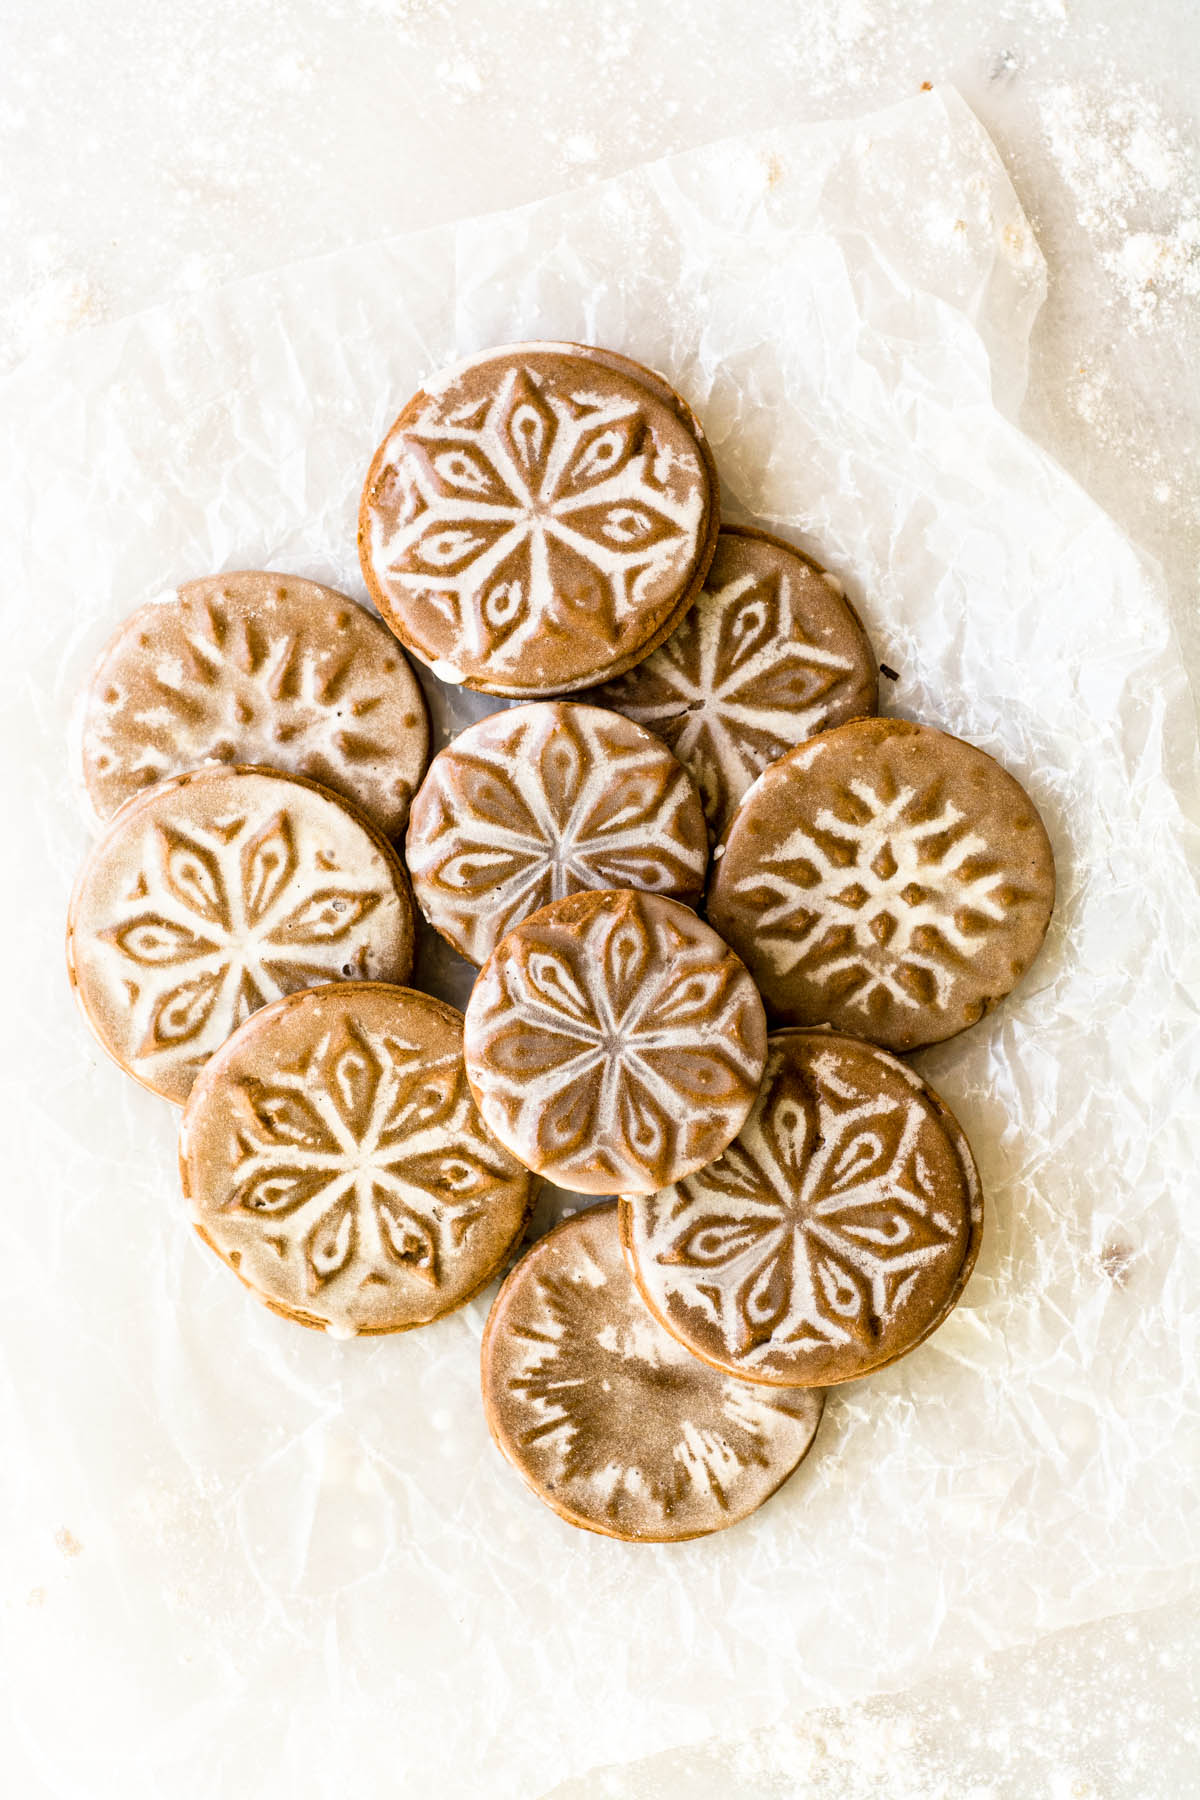 10 Yummy Gingerbread Cookies